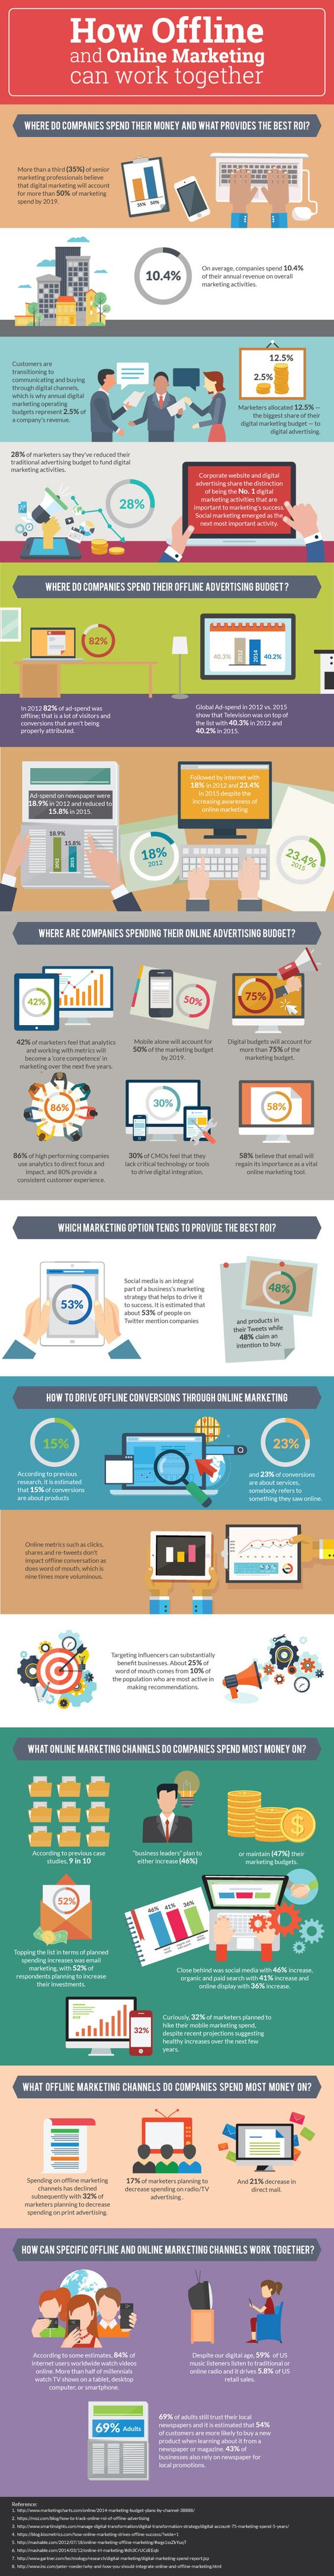 How Offline and Online Marketing Can Work Together [Infographic] | Social Media Today